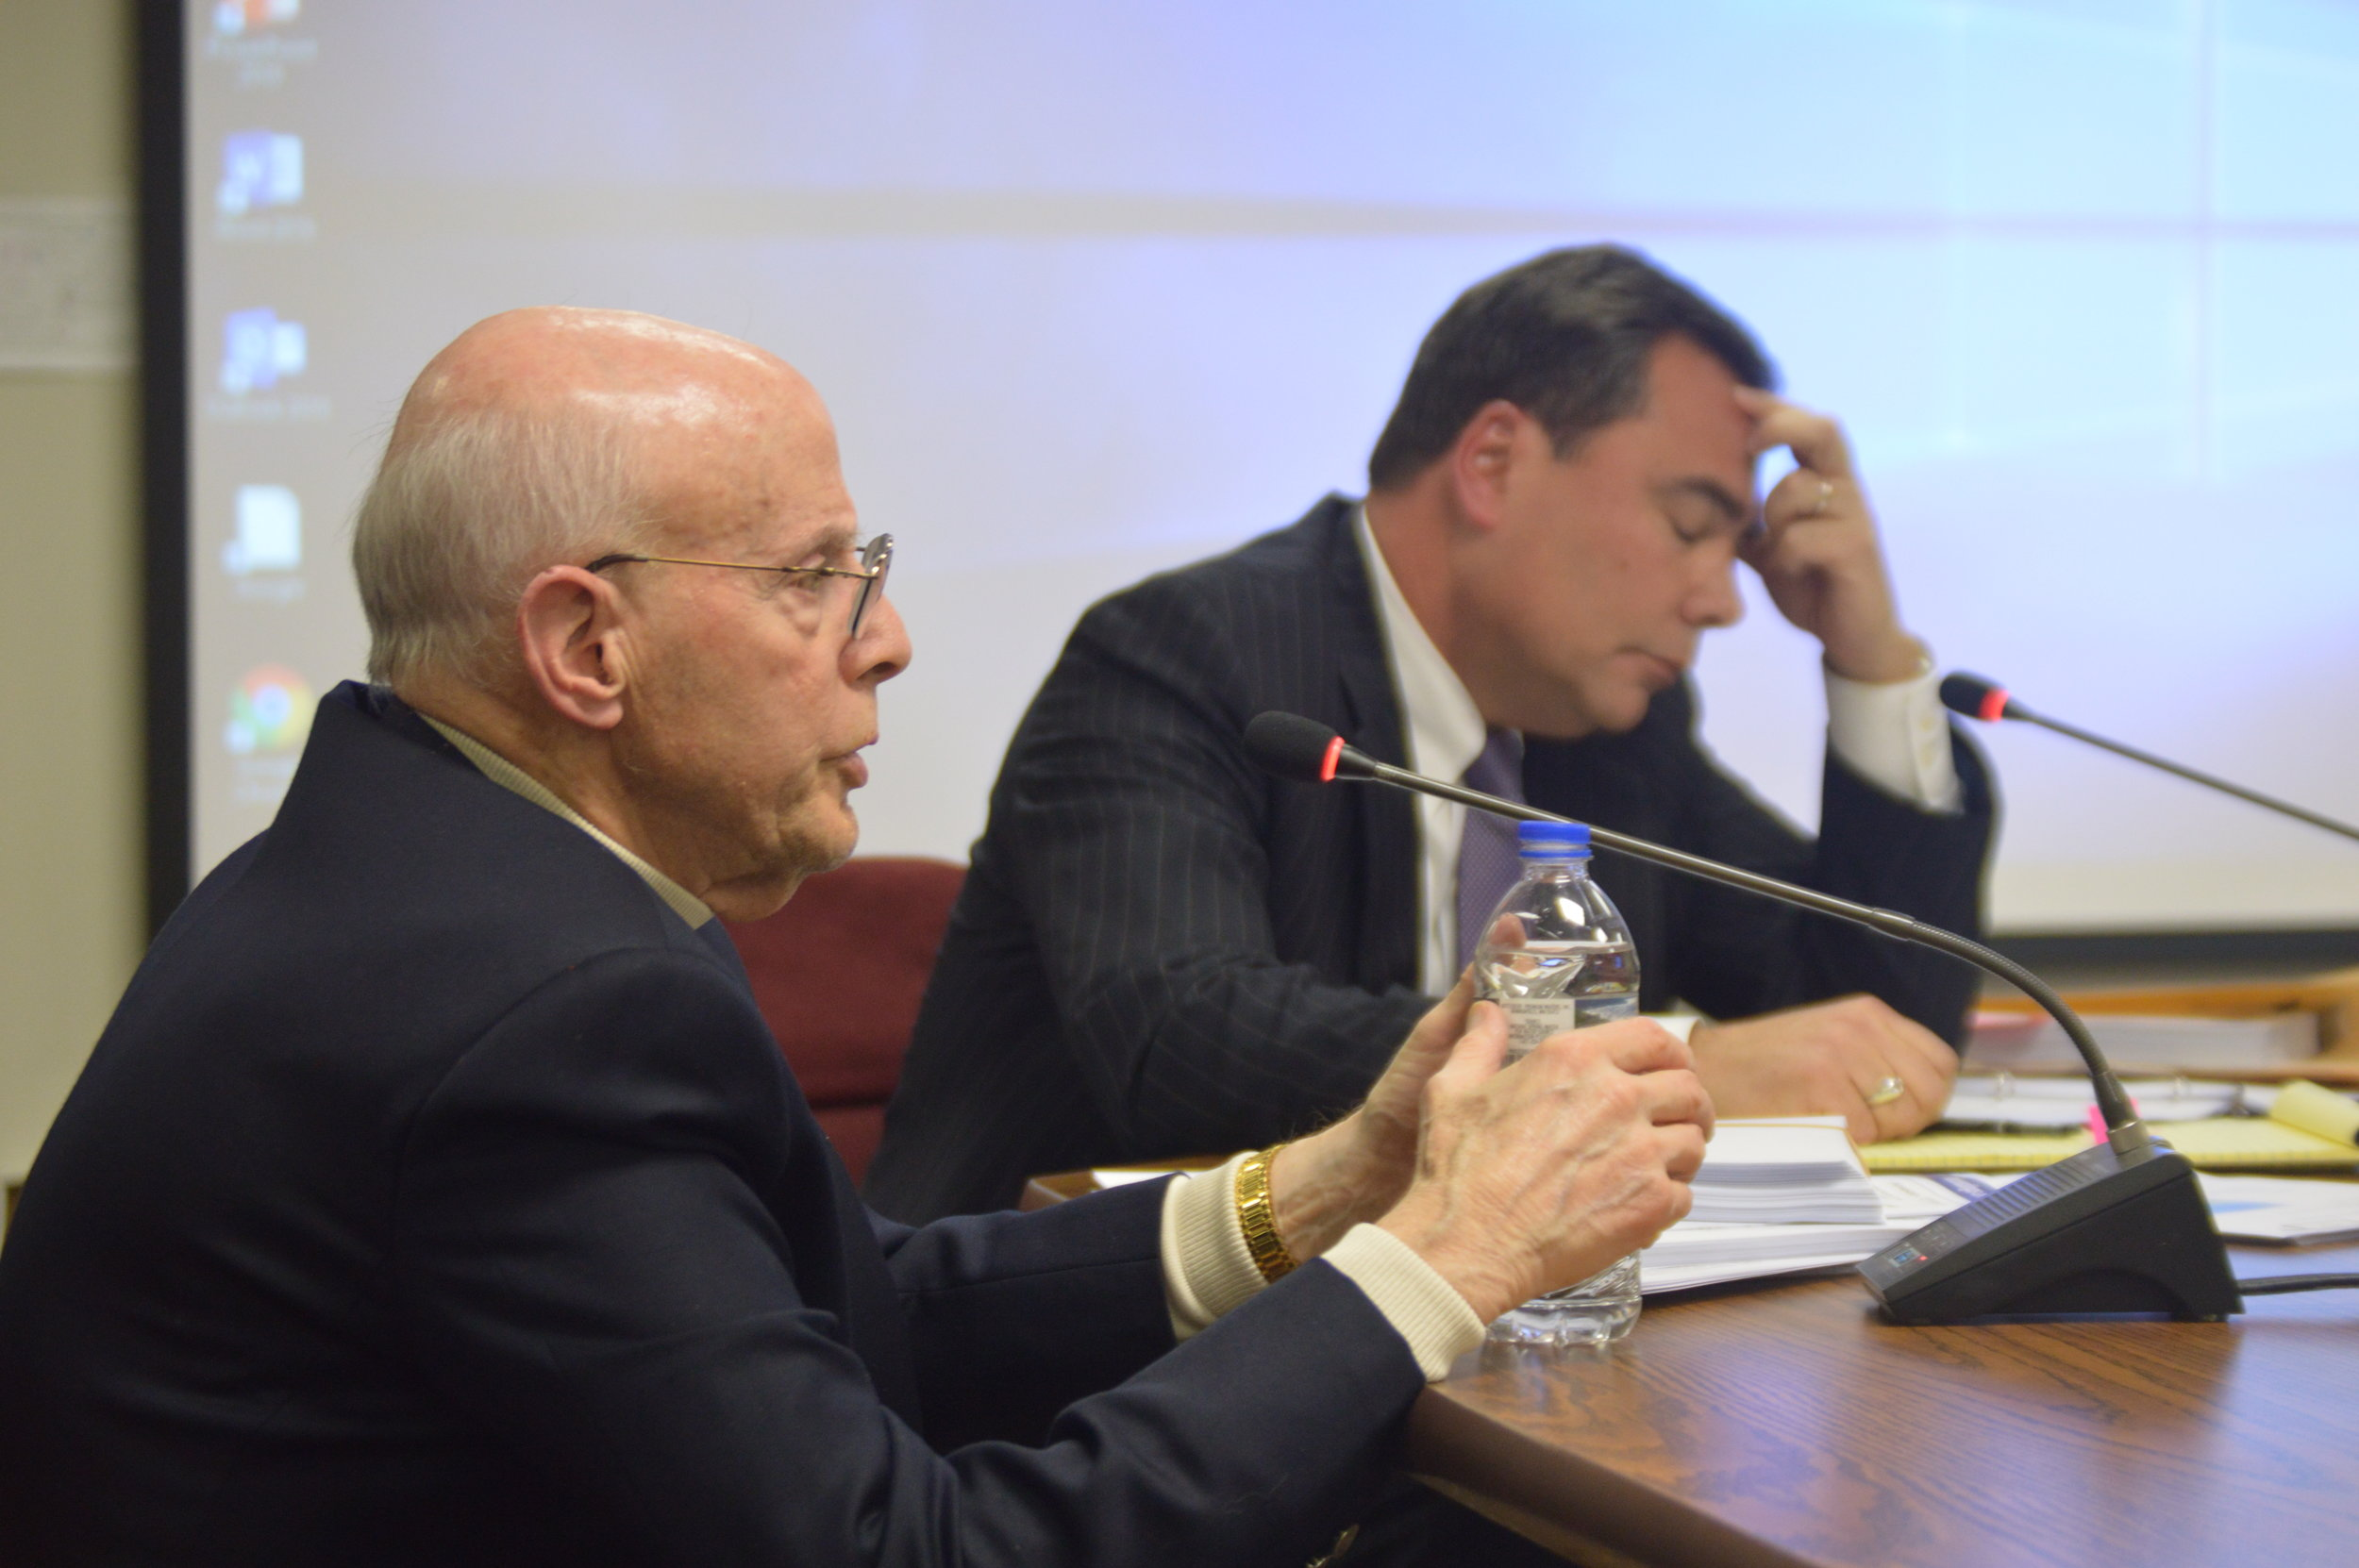 Dr. Phil Schomer, left, testifies before the McLean County Zoning Board of Appeals Wednesday night. Attorney Phil Luetkehans, right, represents residents and property owners opposing the project. (Image Credit: Breanna Grow)